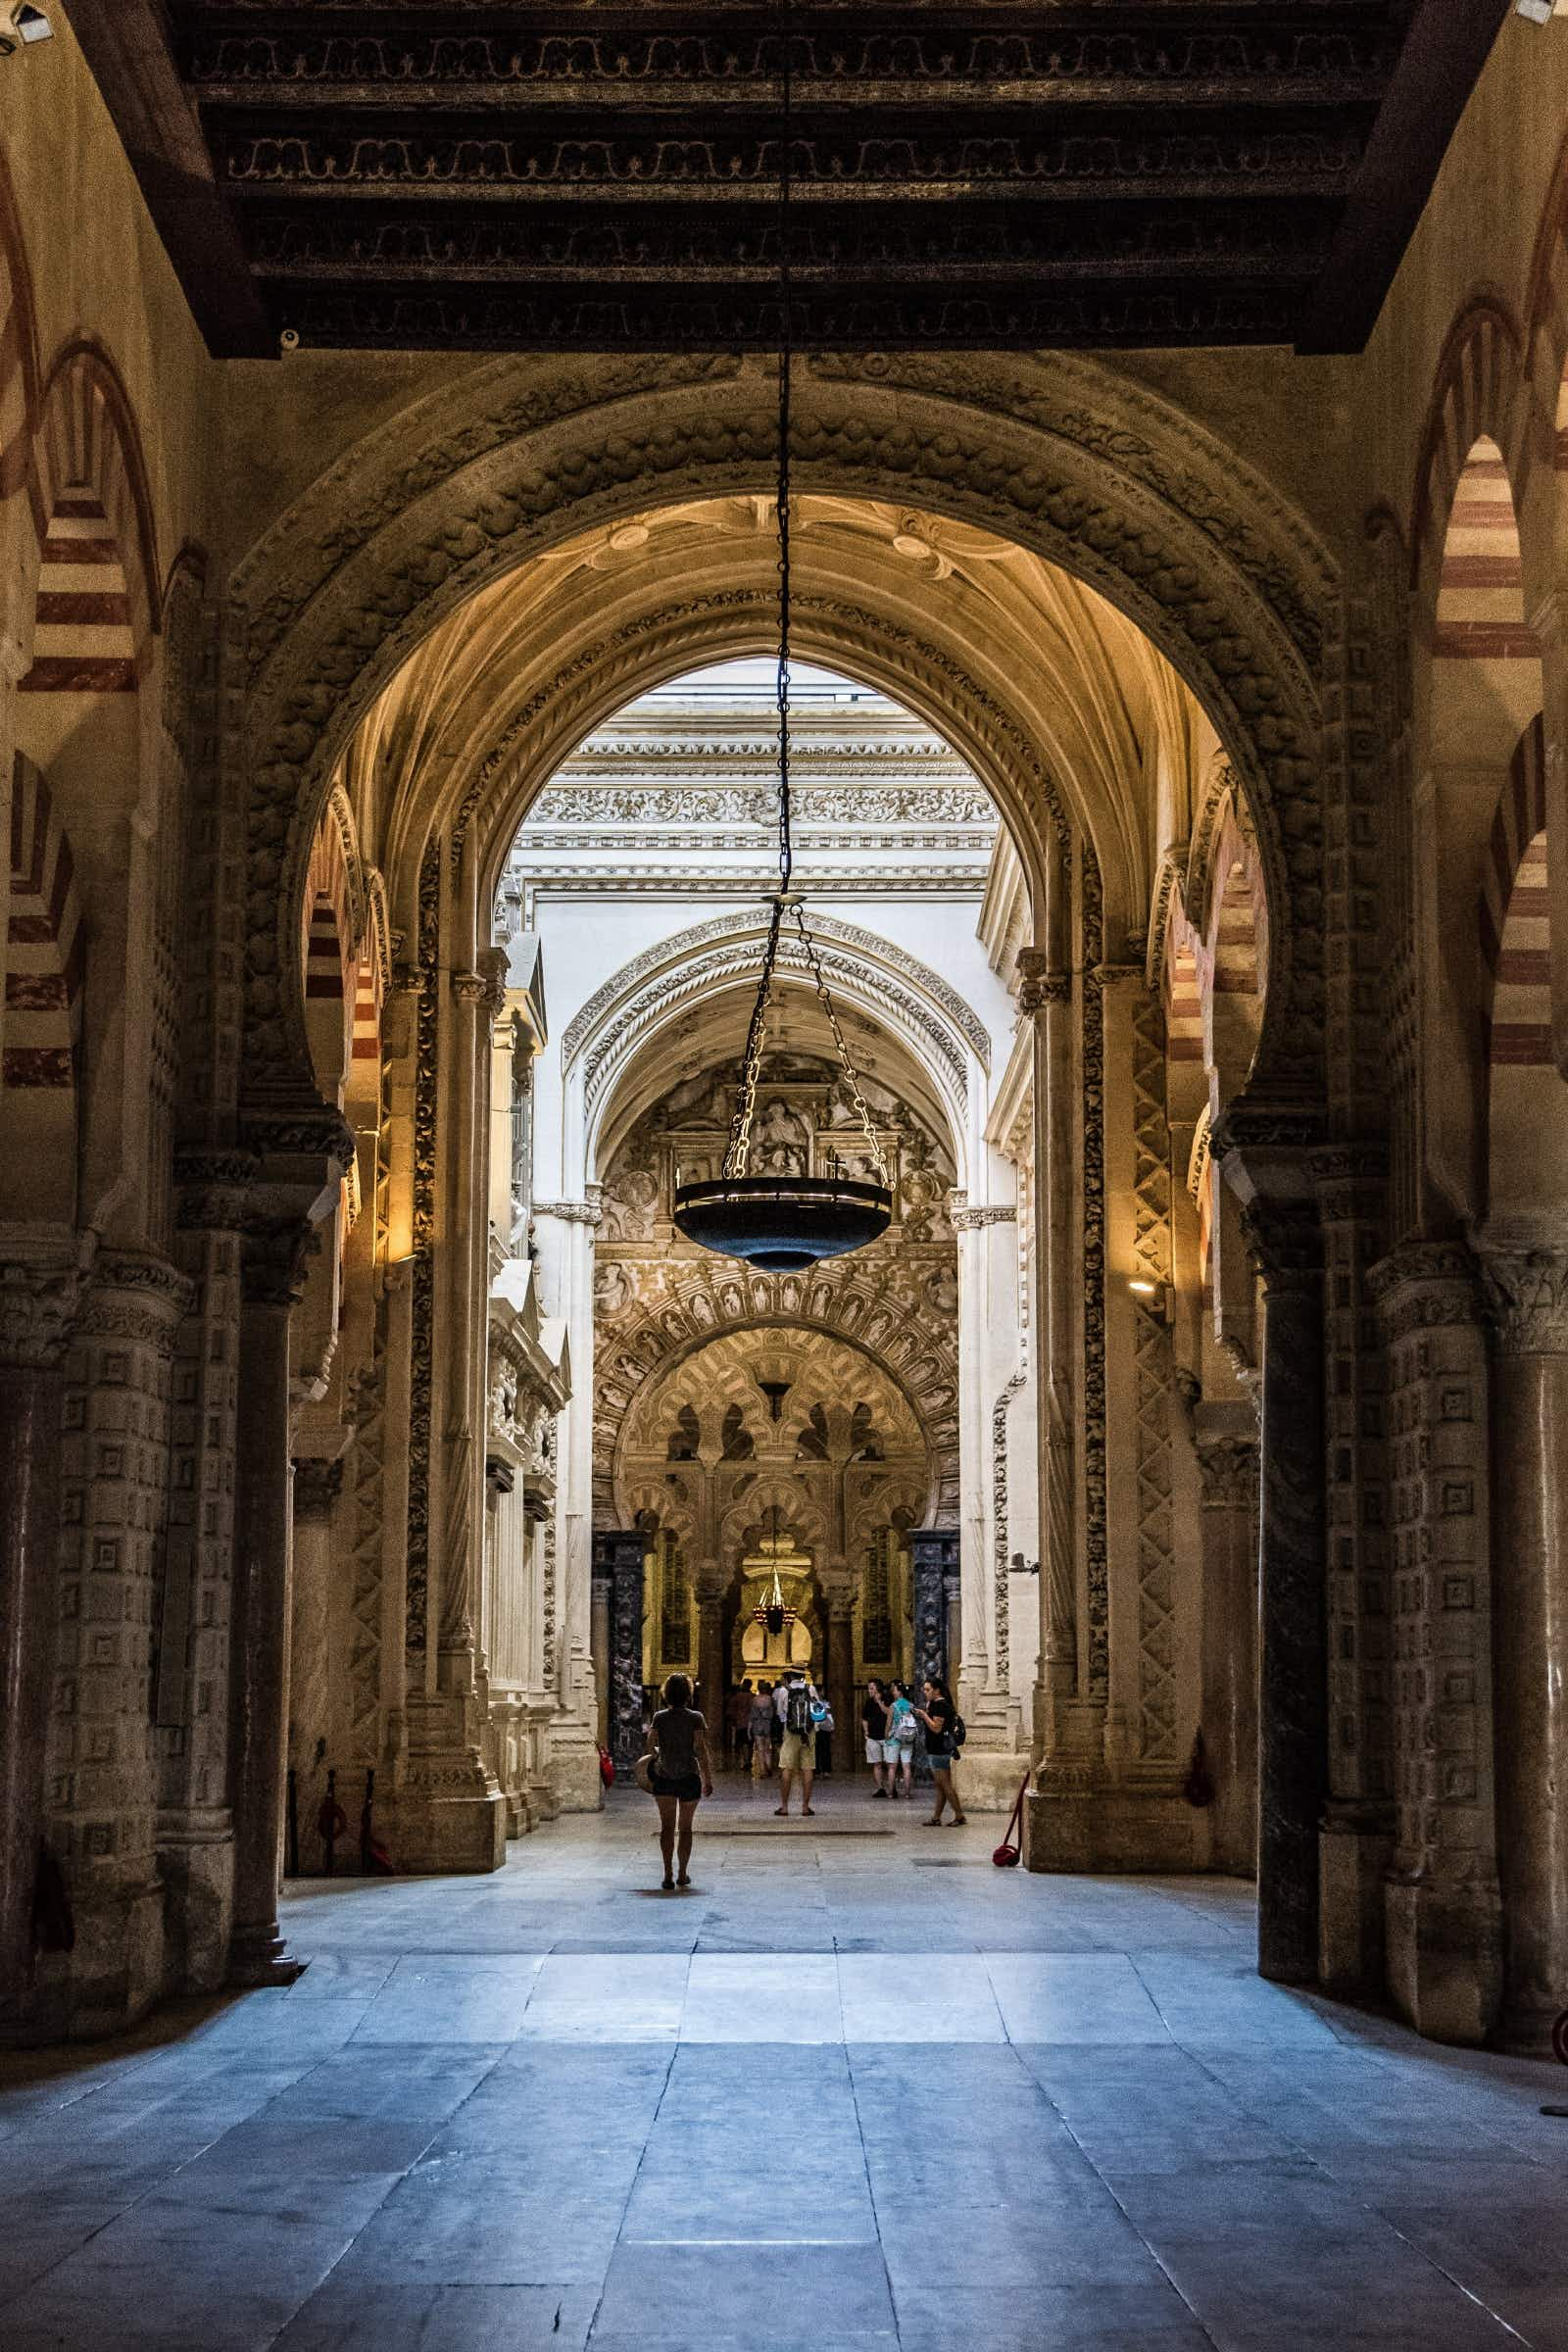 Interior of the Great Mosque and Cathedral of Cordoba